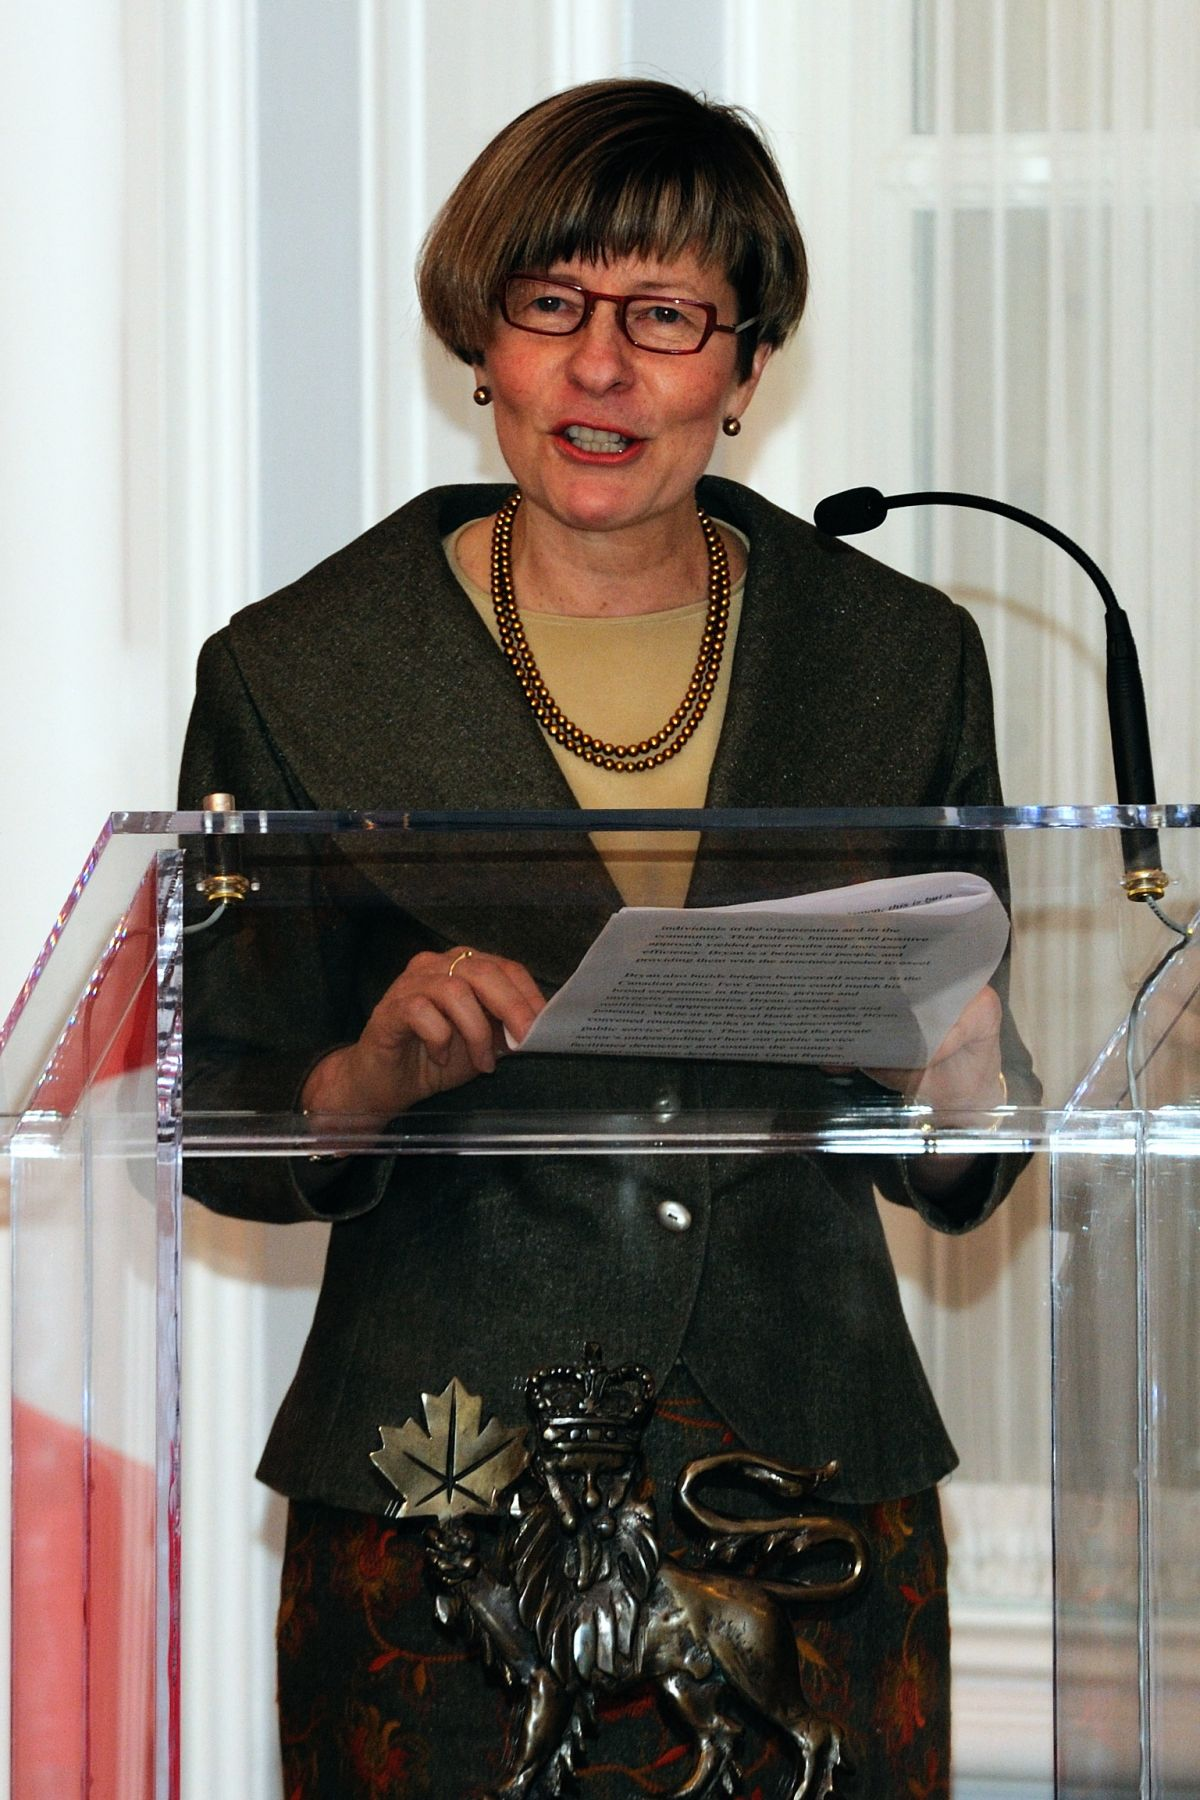 The President of IPAC Ms. Denyse Amyot introduced the recipient of the 2010 Vanier Medal to the audience gathered at Rideau Hall on March 18, 2011.